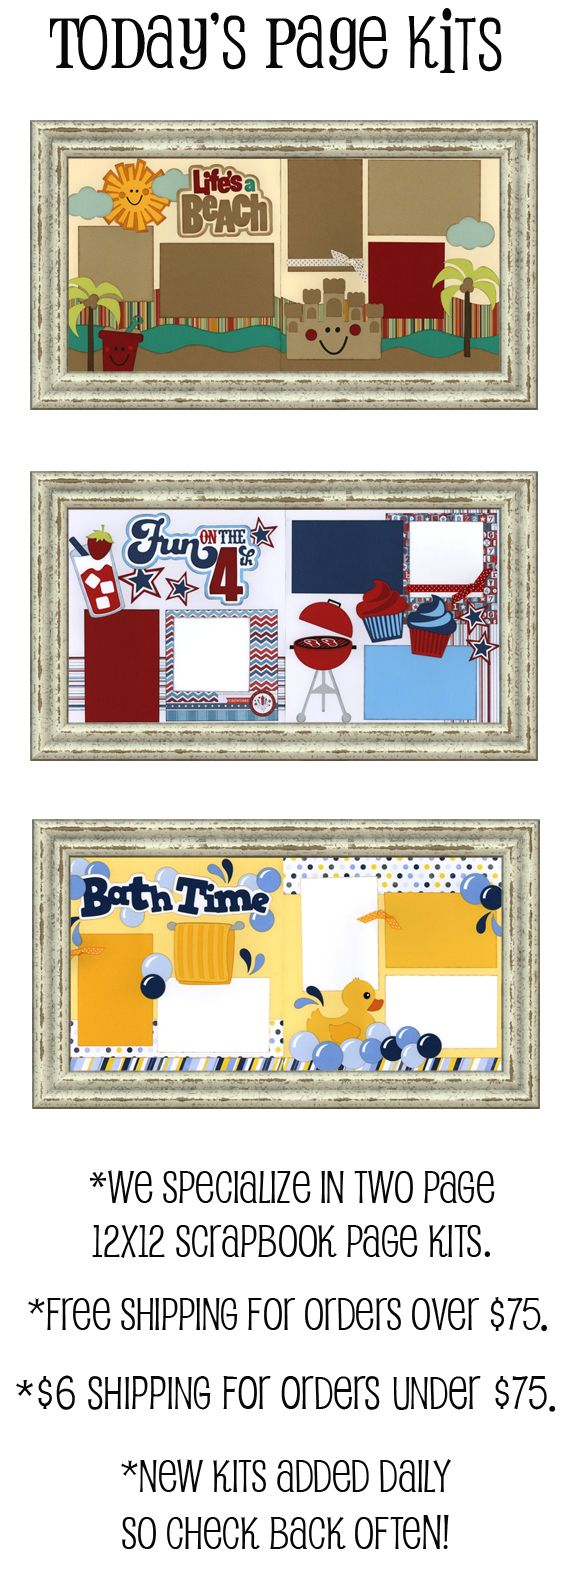 Super Cute Scrapbook Page Kits Page Layout Ideas Scrapbooking